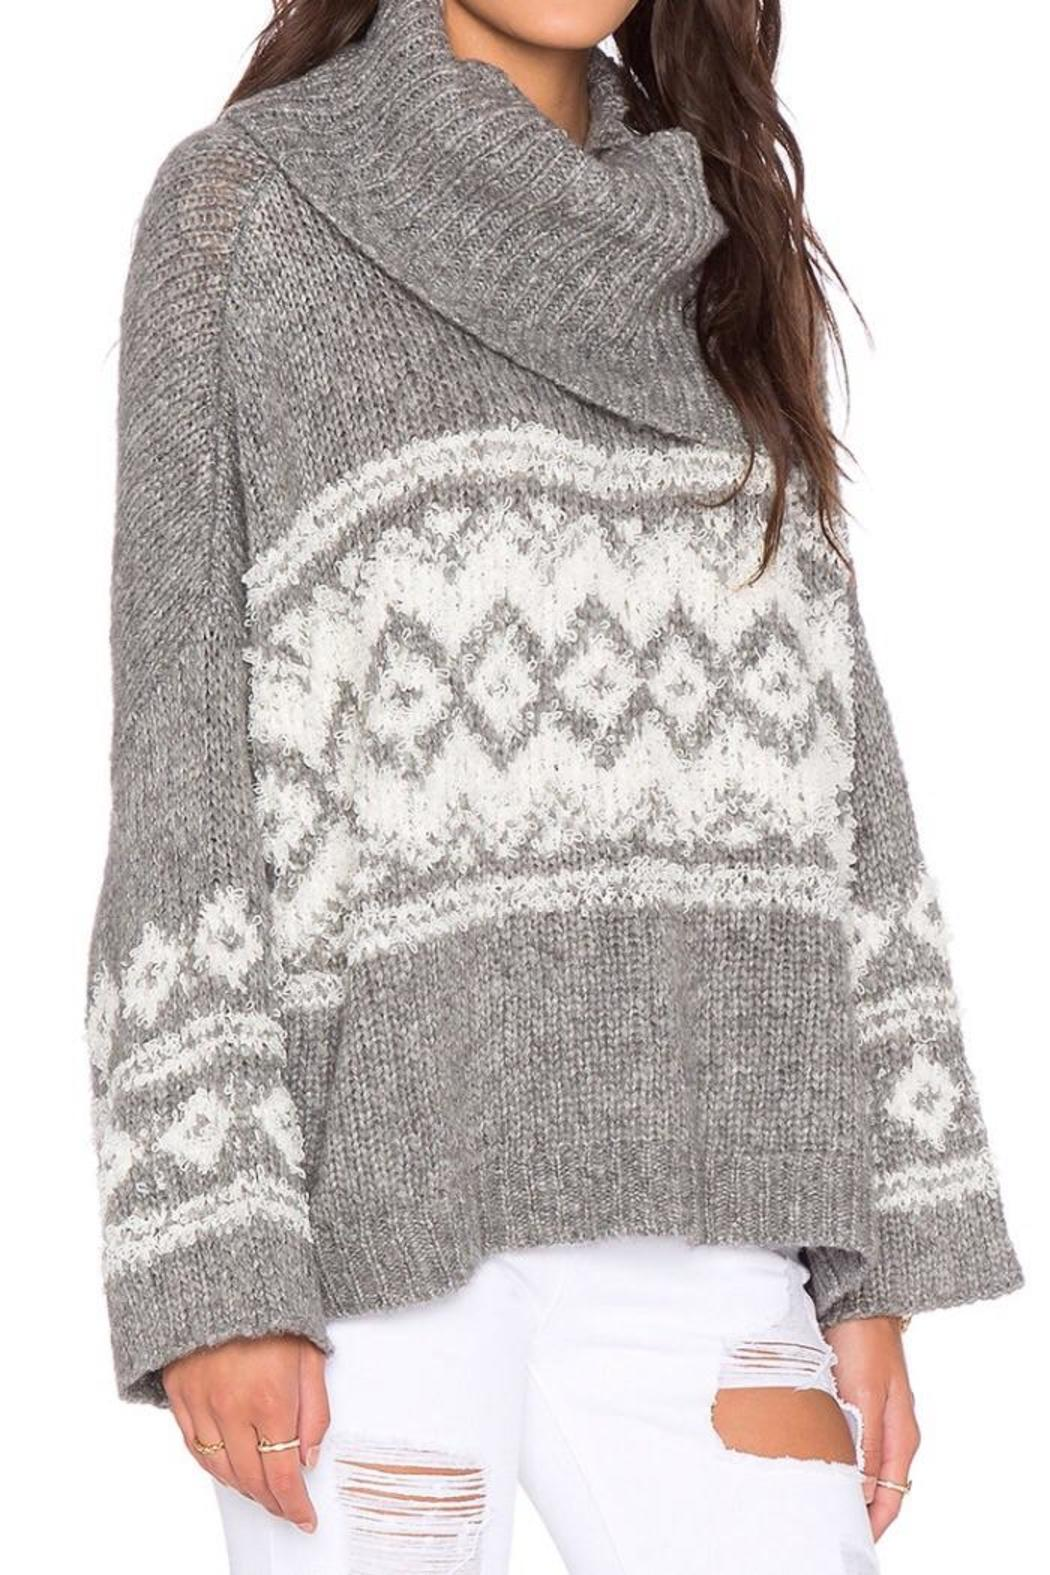 Free People Fair Isle Pullover from New York by The Isle Of You ...